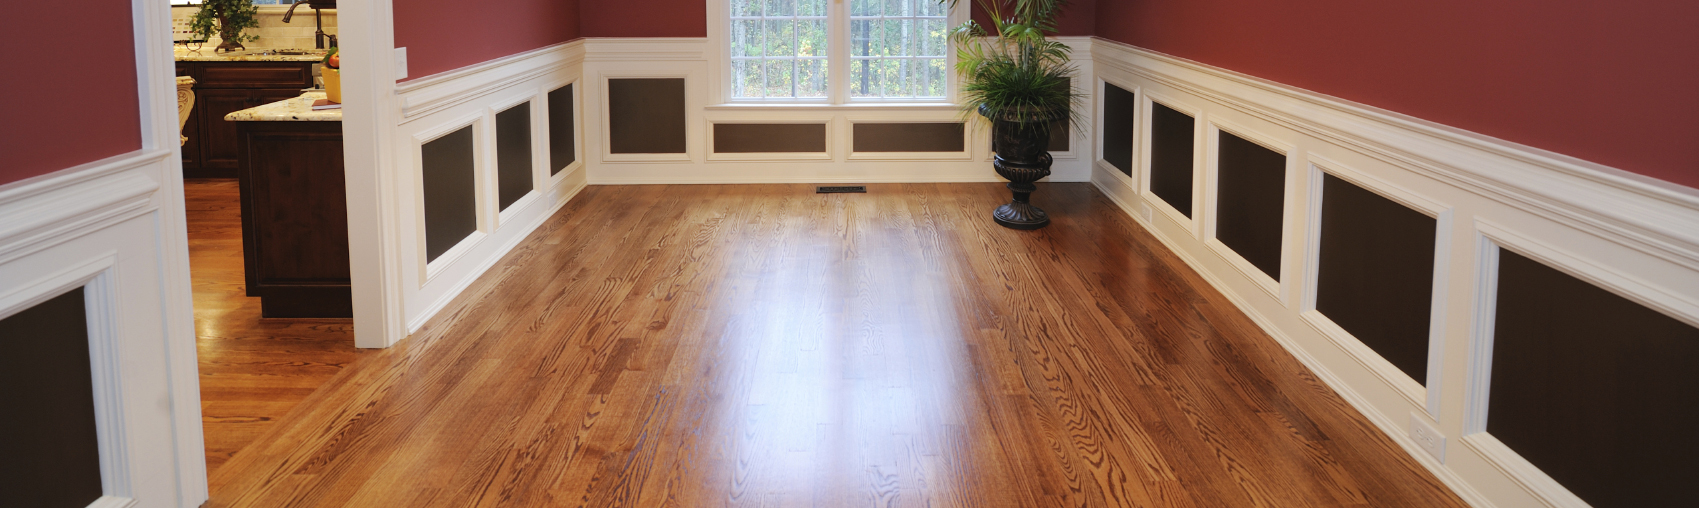 How To Lay Hardwood Floor